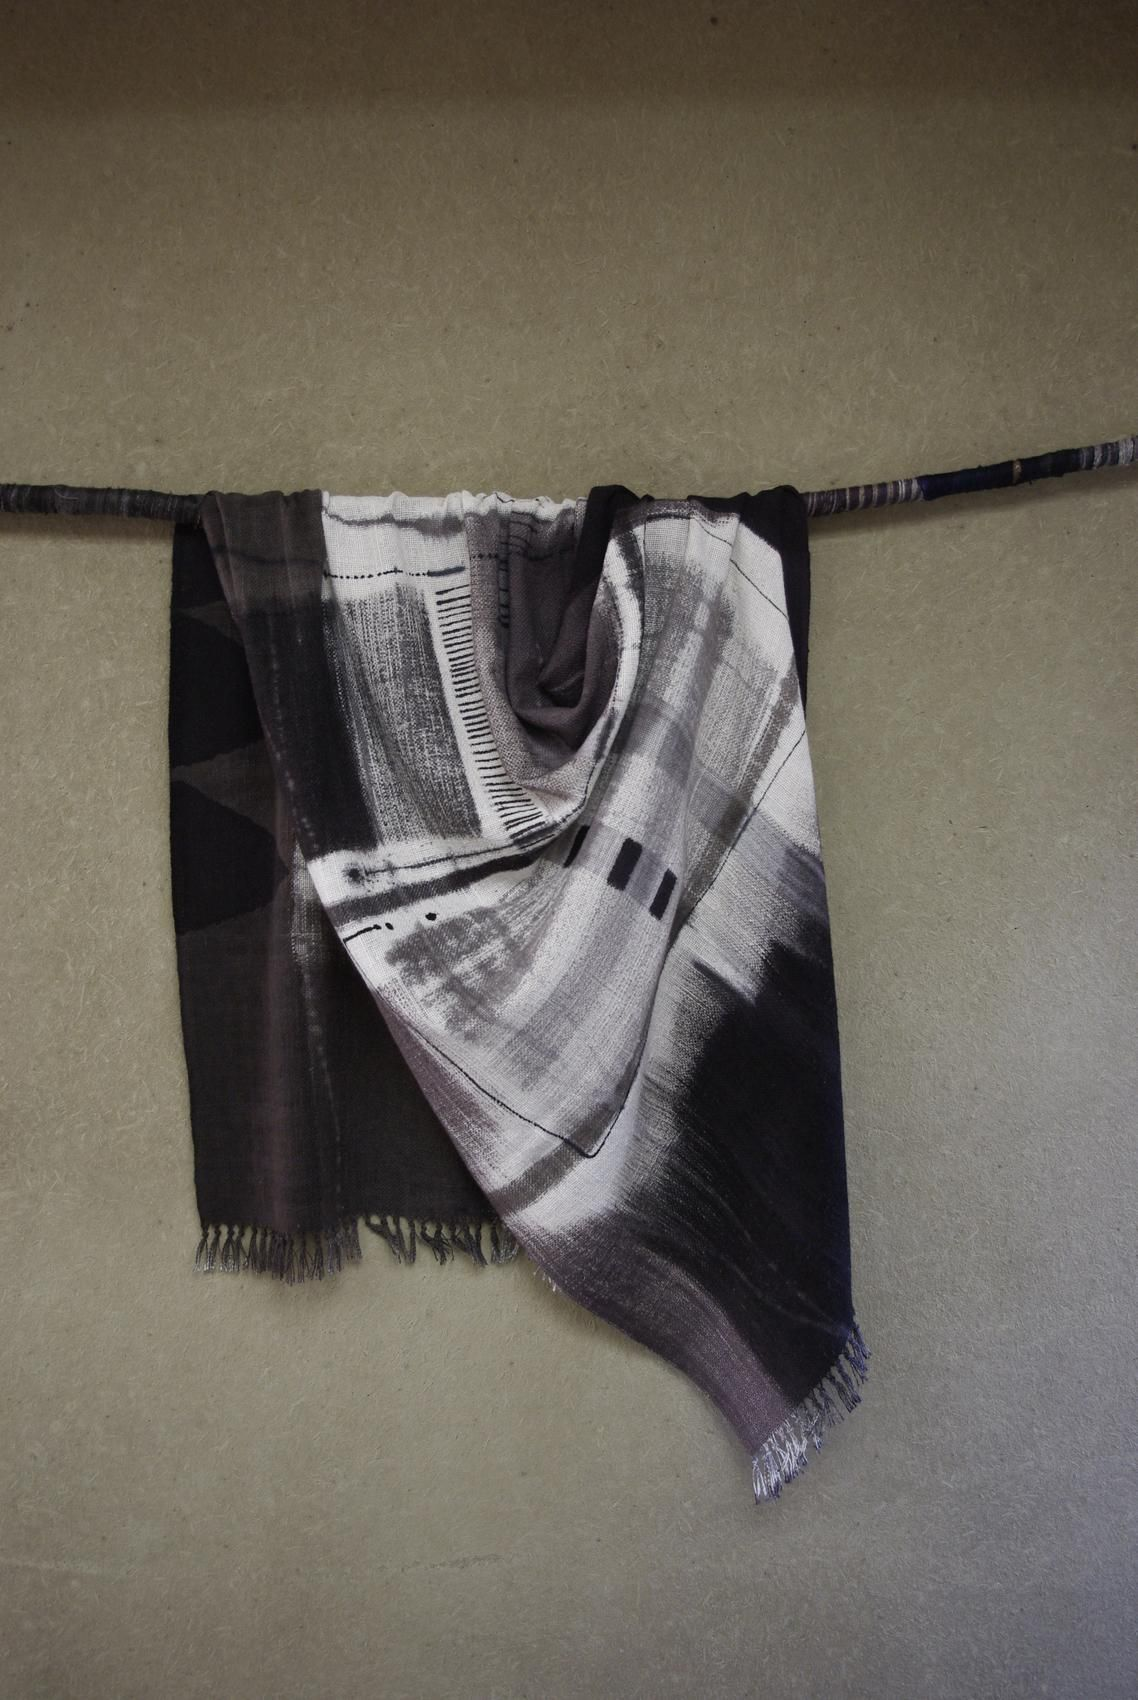 Japanese textile, cotton, hand drawing and dyeing